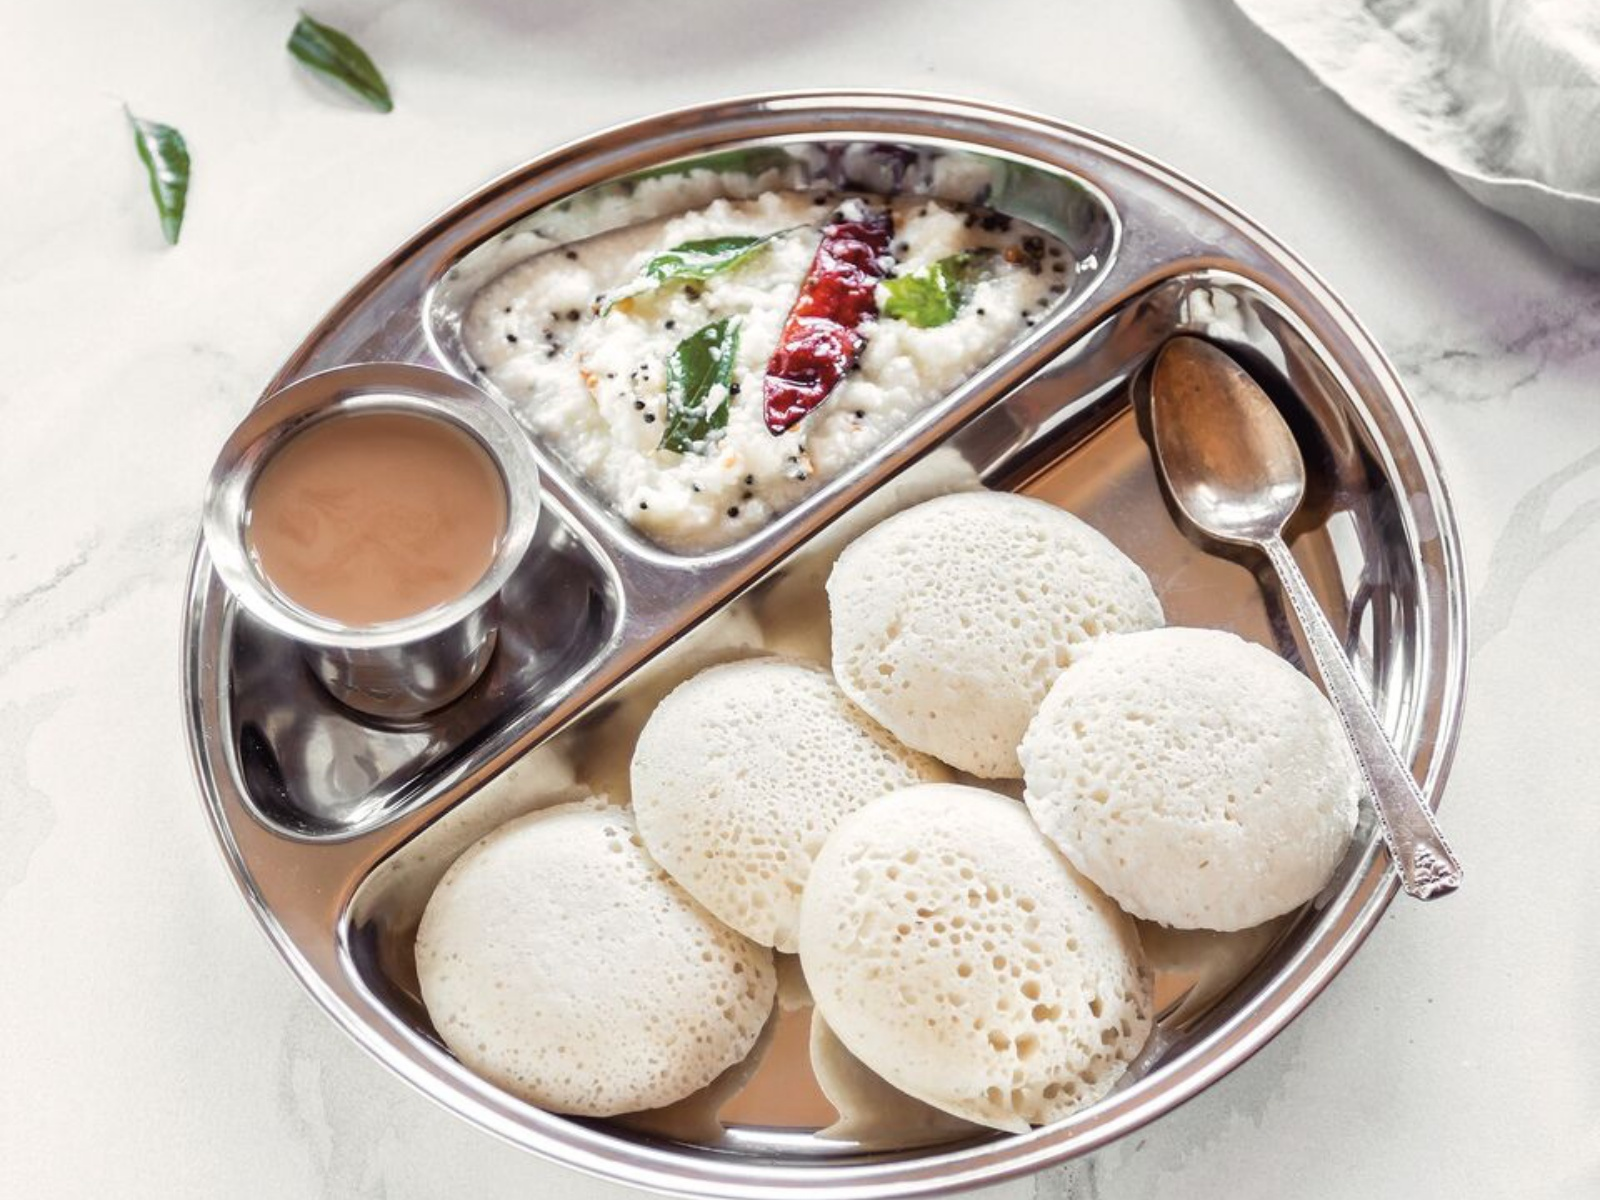 idlis: steamed rice lentil cakes with coconut chutney